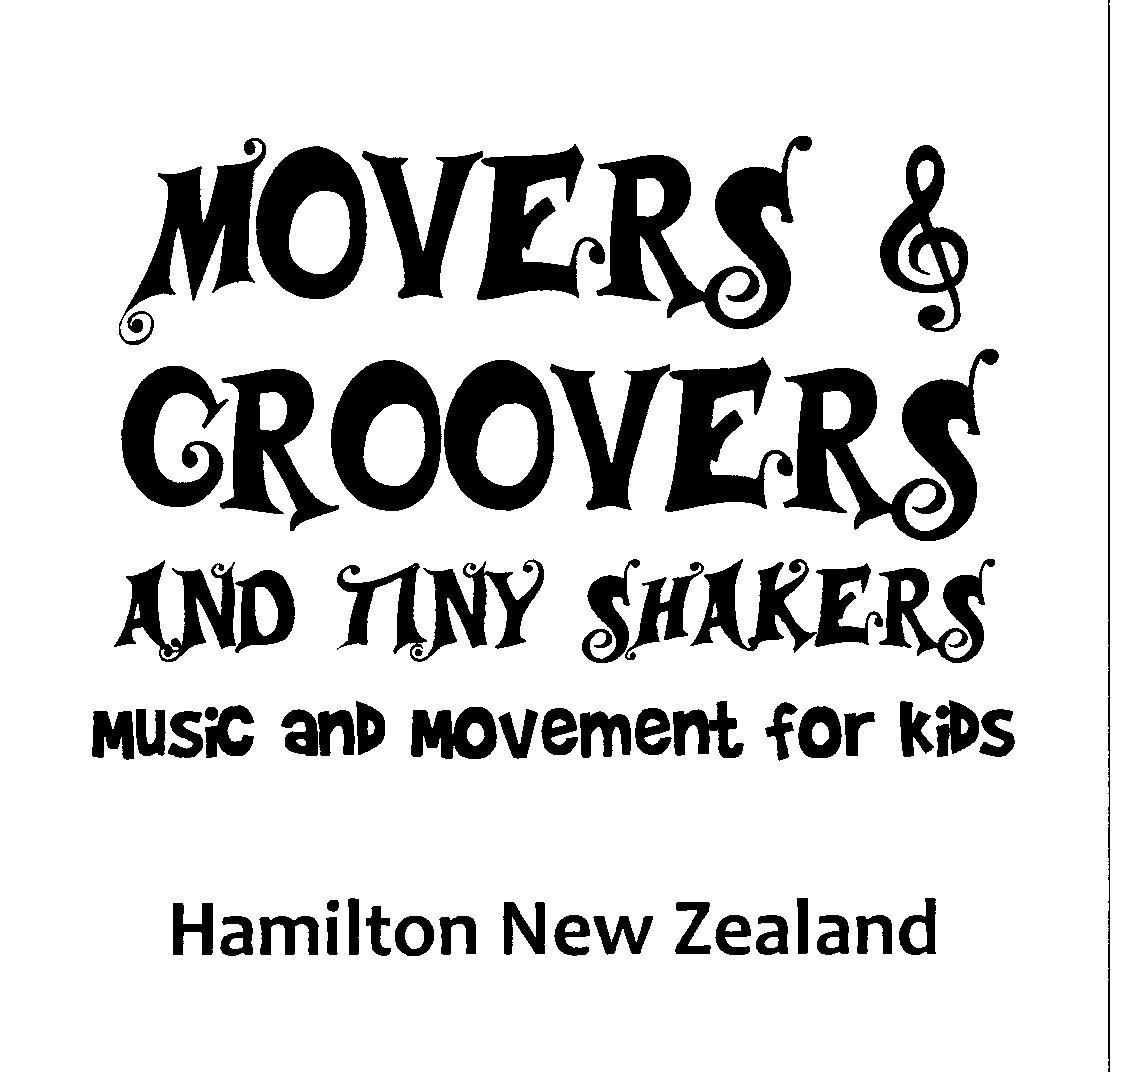 movers and grovefrs.jpg